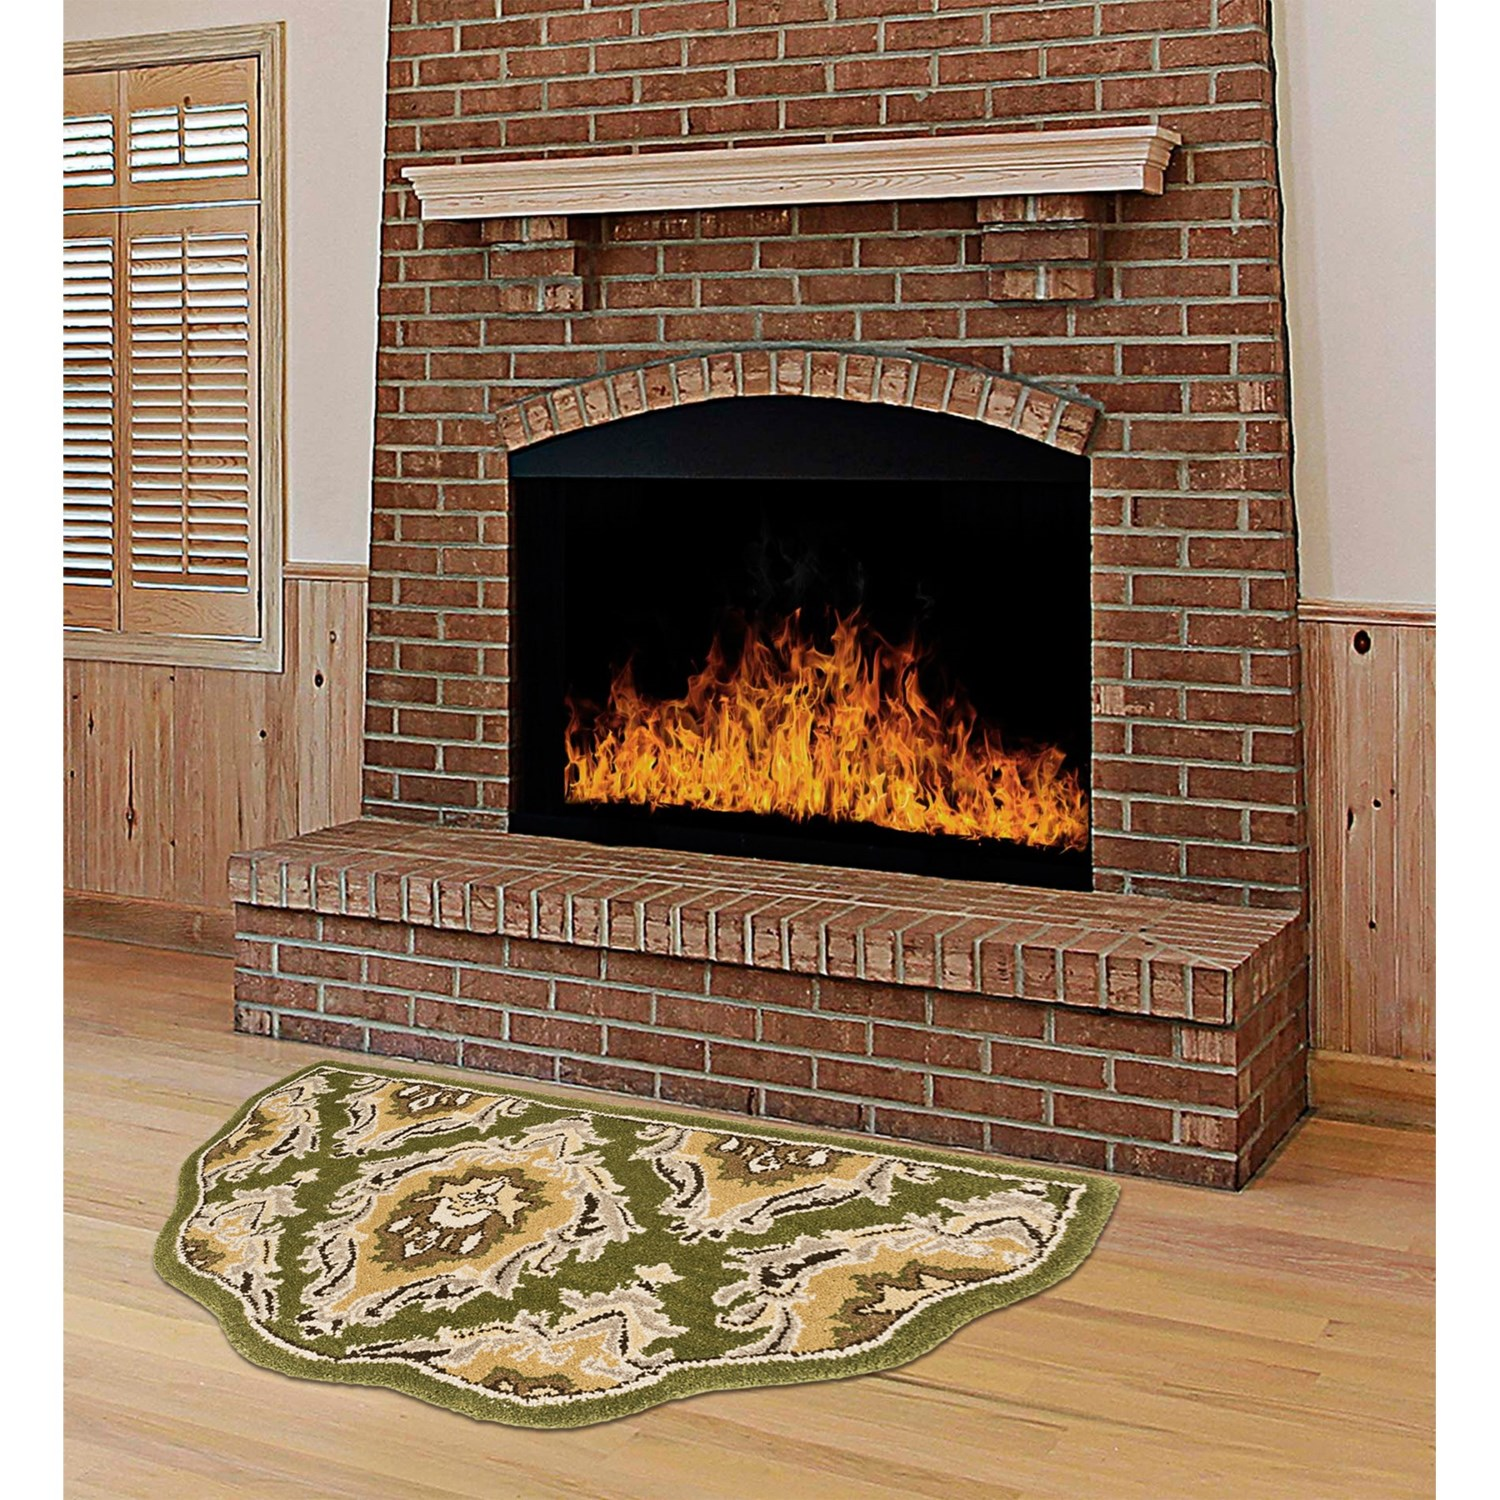 Fireplace Hearth Mat Kaleen Scalloped Hearth Rug Wool 21x42 Quot 6113v Save 35